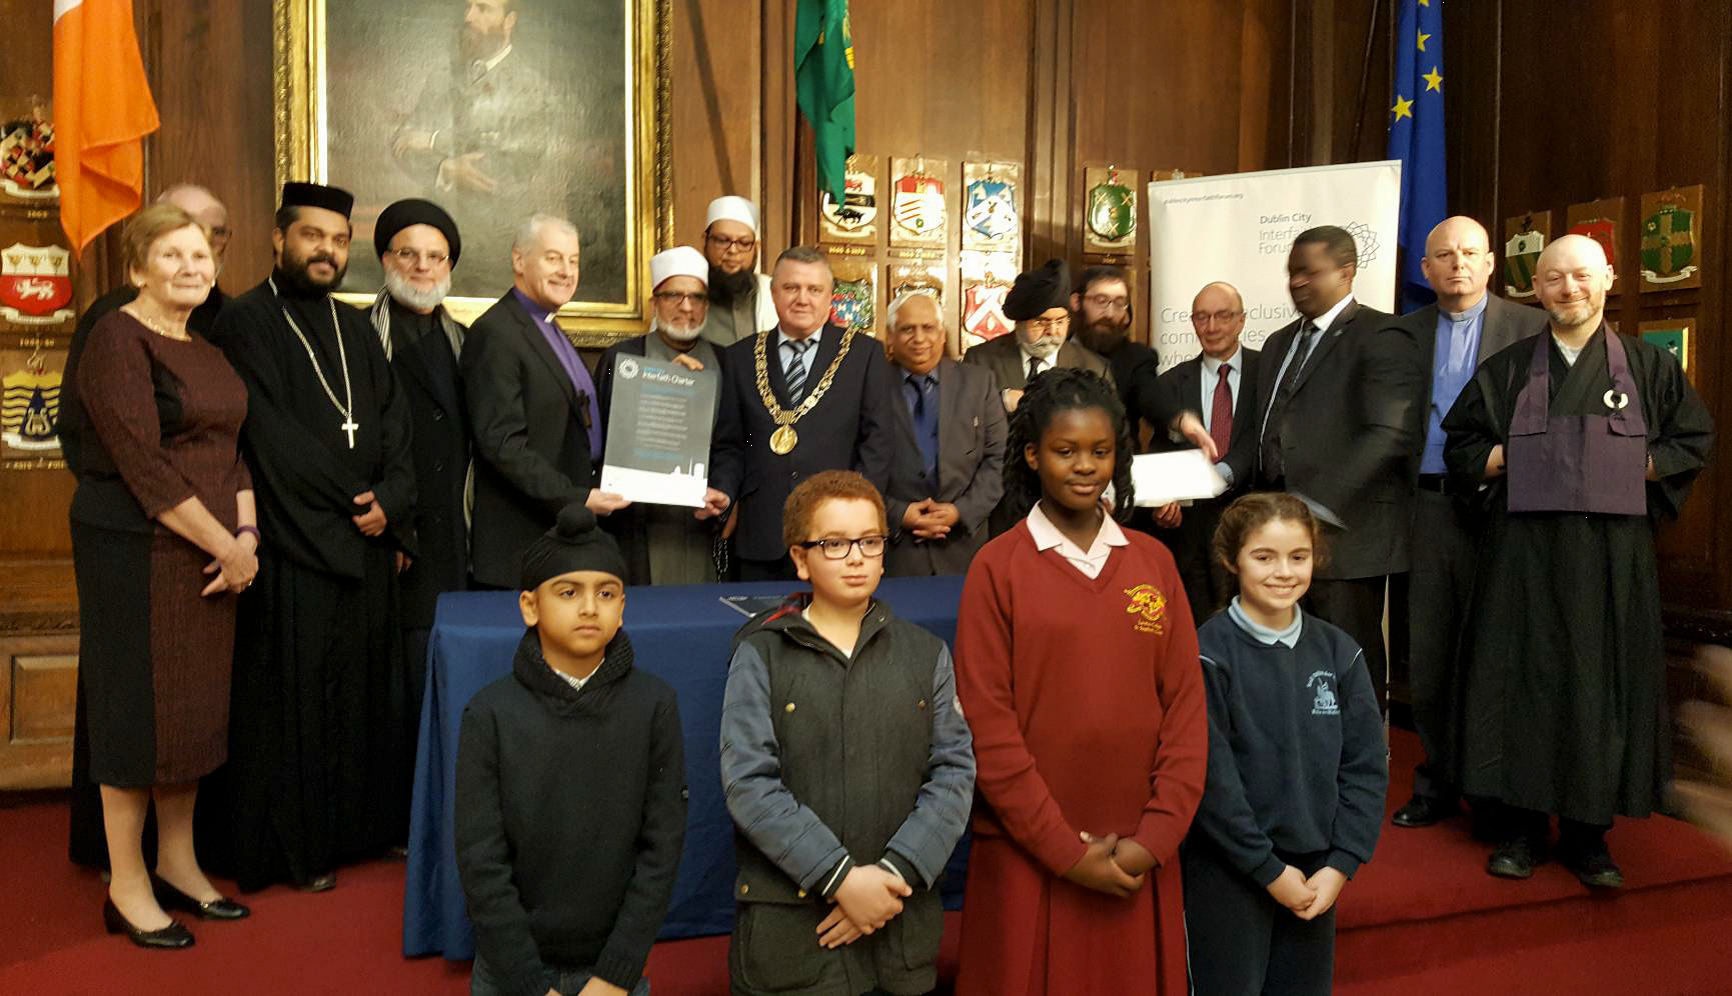 Dublin City Interfaith Forum